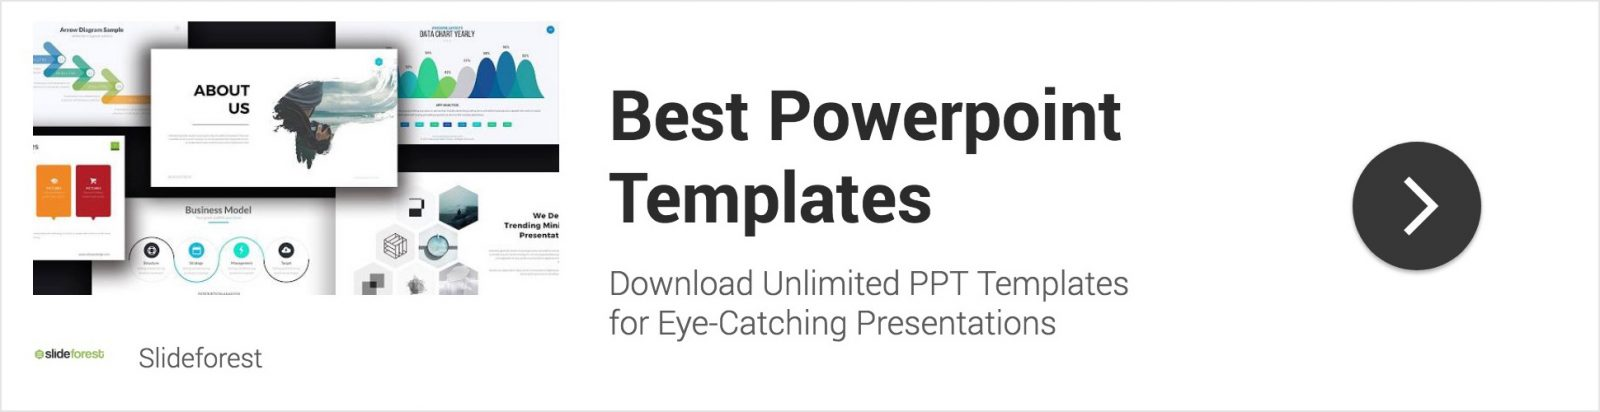 25+ Free Simple Powerpoint Templates for Presentations - simple powerpoint templates